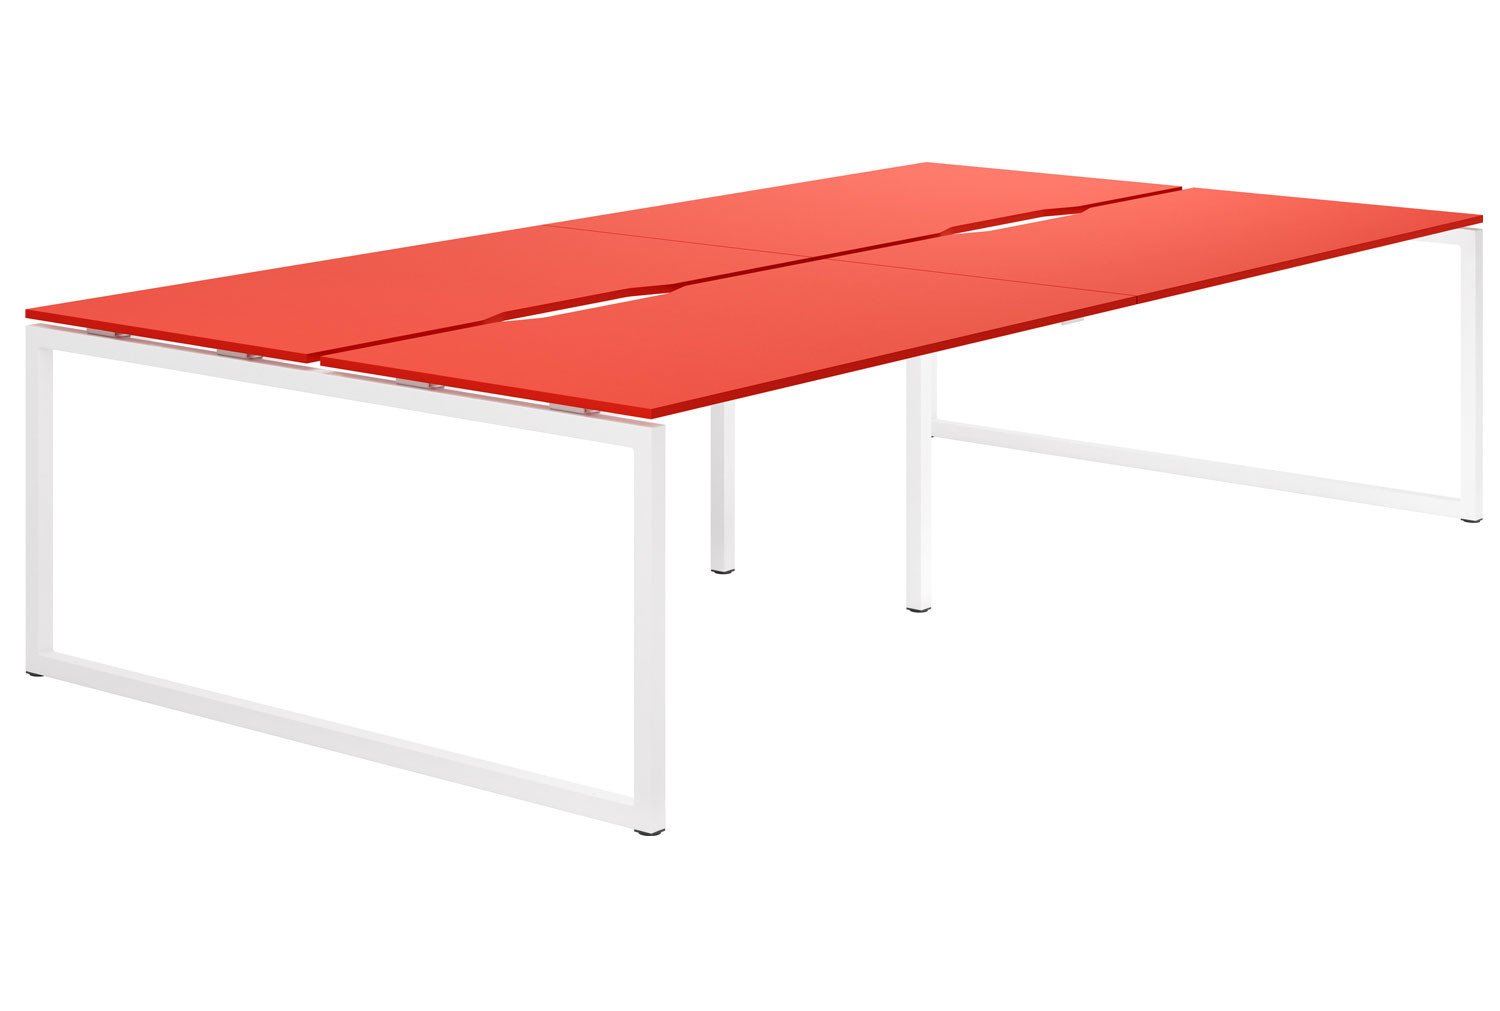 Campos Hooped Leg 4 Person Back To Back Bench Desk (Red)